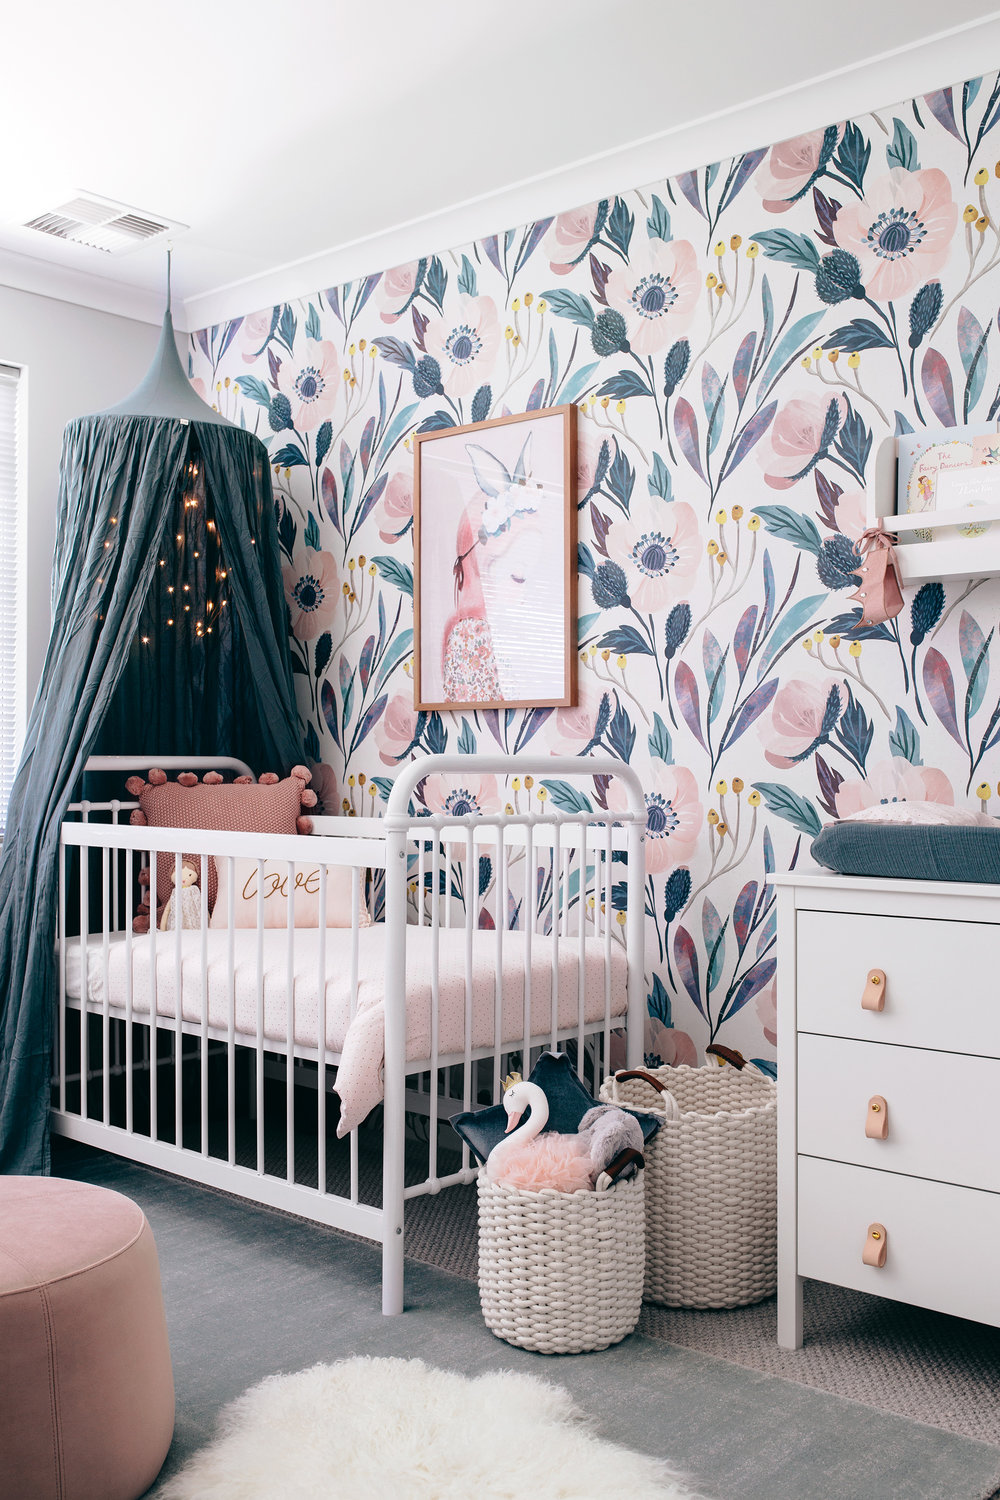 Moody Floral Wallpaper  /   Photography + Interior design  Tarina Wood, Oh Eight Oh Nine